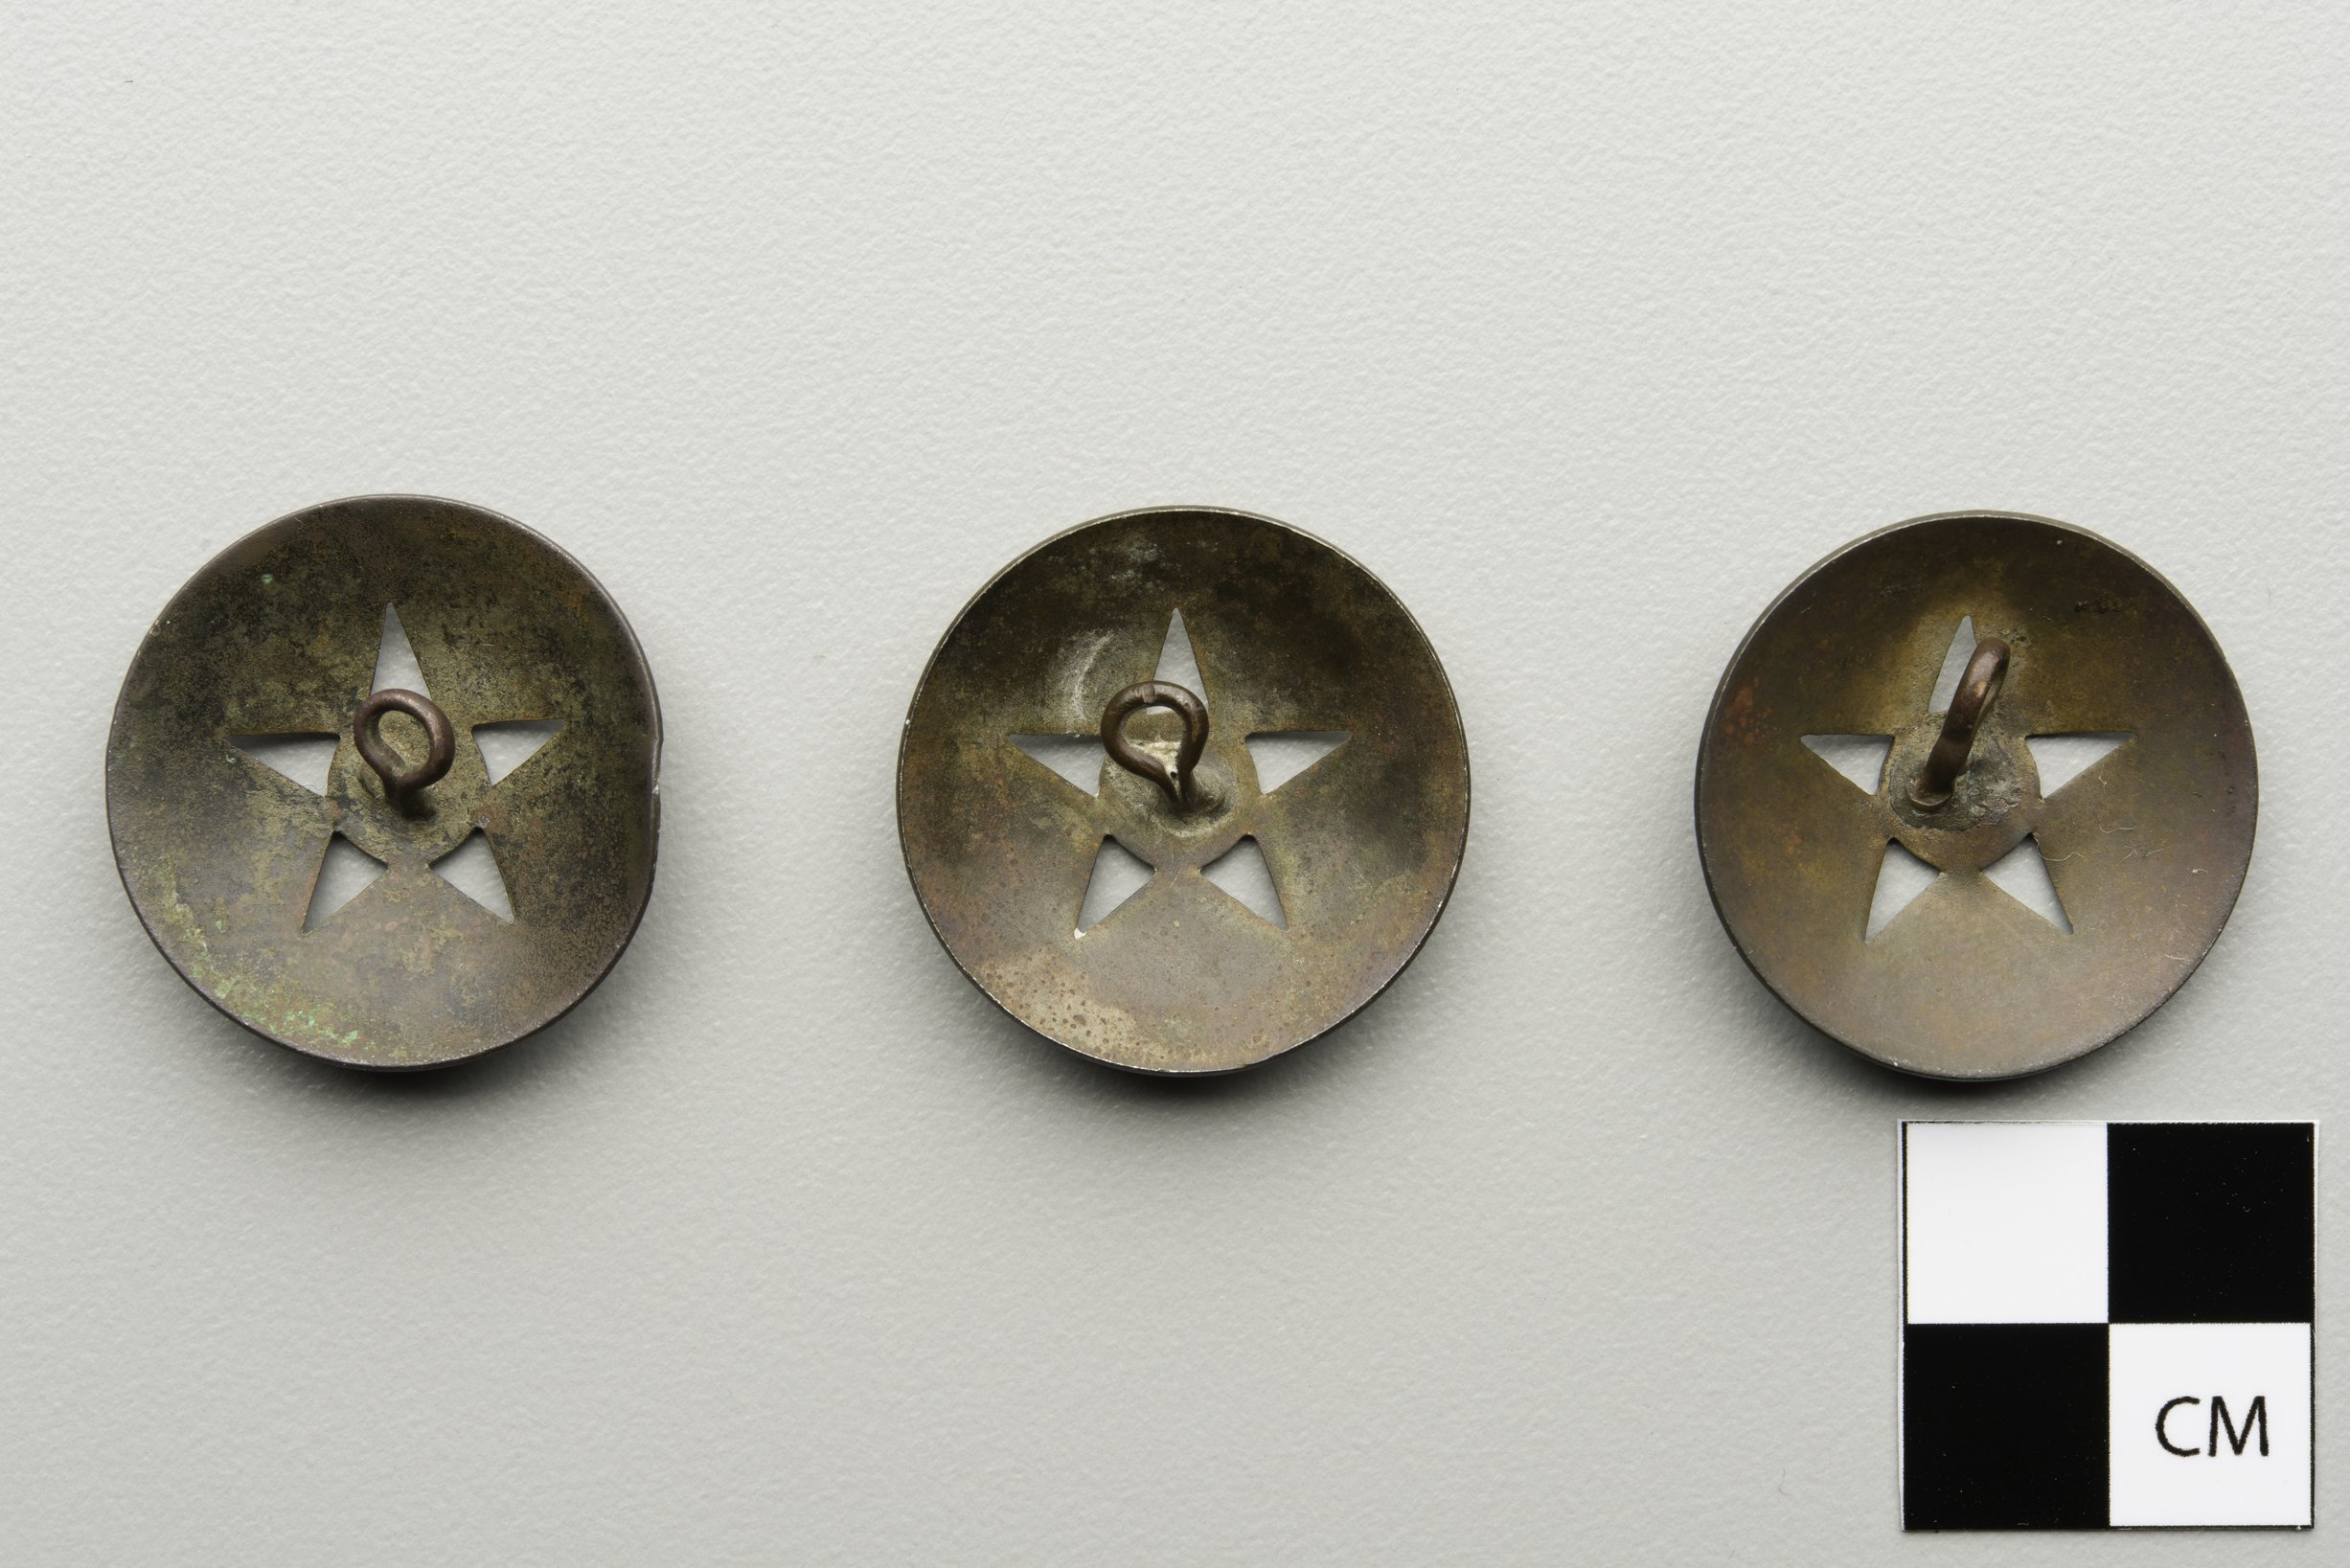 Conchos from the Canville Trading Post, 14NO396 - 4